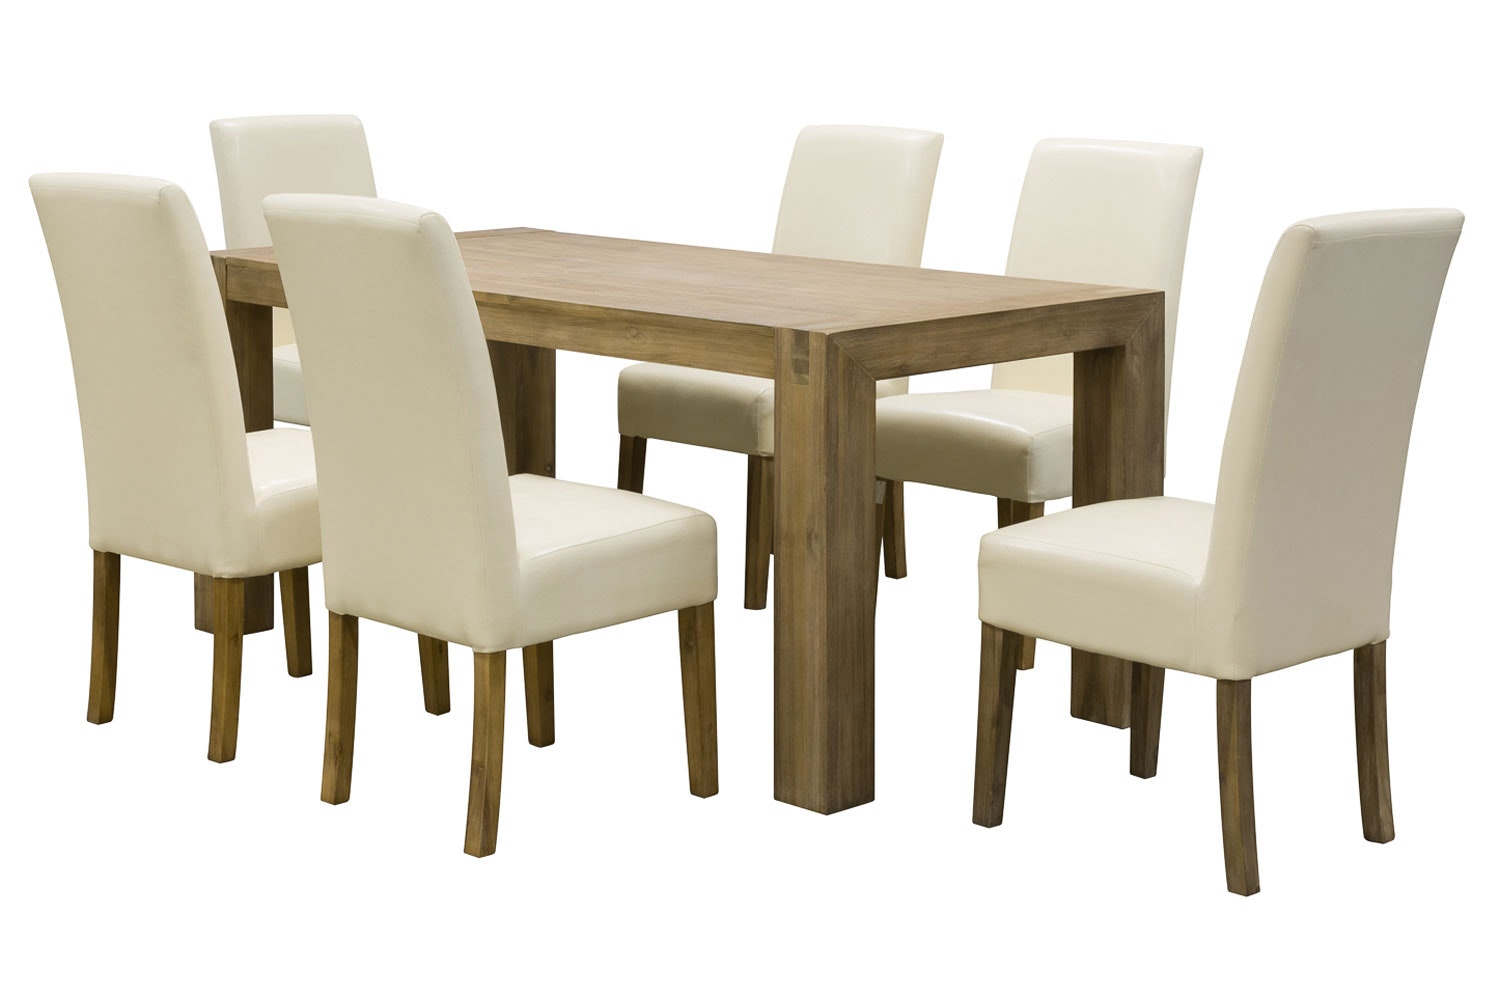 harveys dining table and chair sets dining sets furniture harveys leather dining room chairs